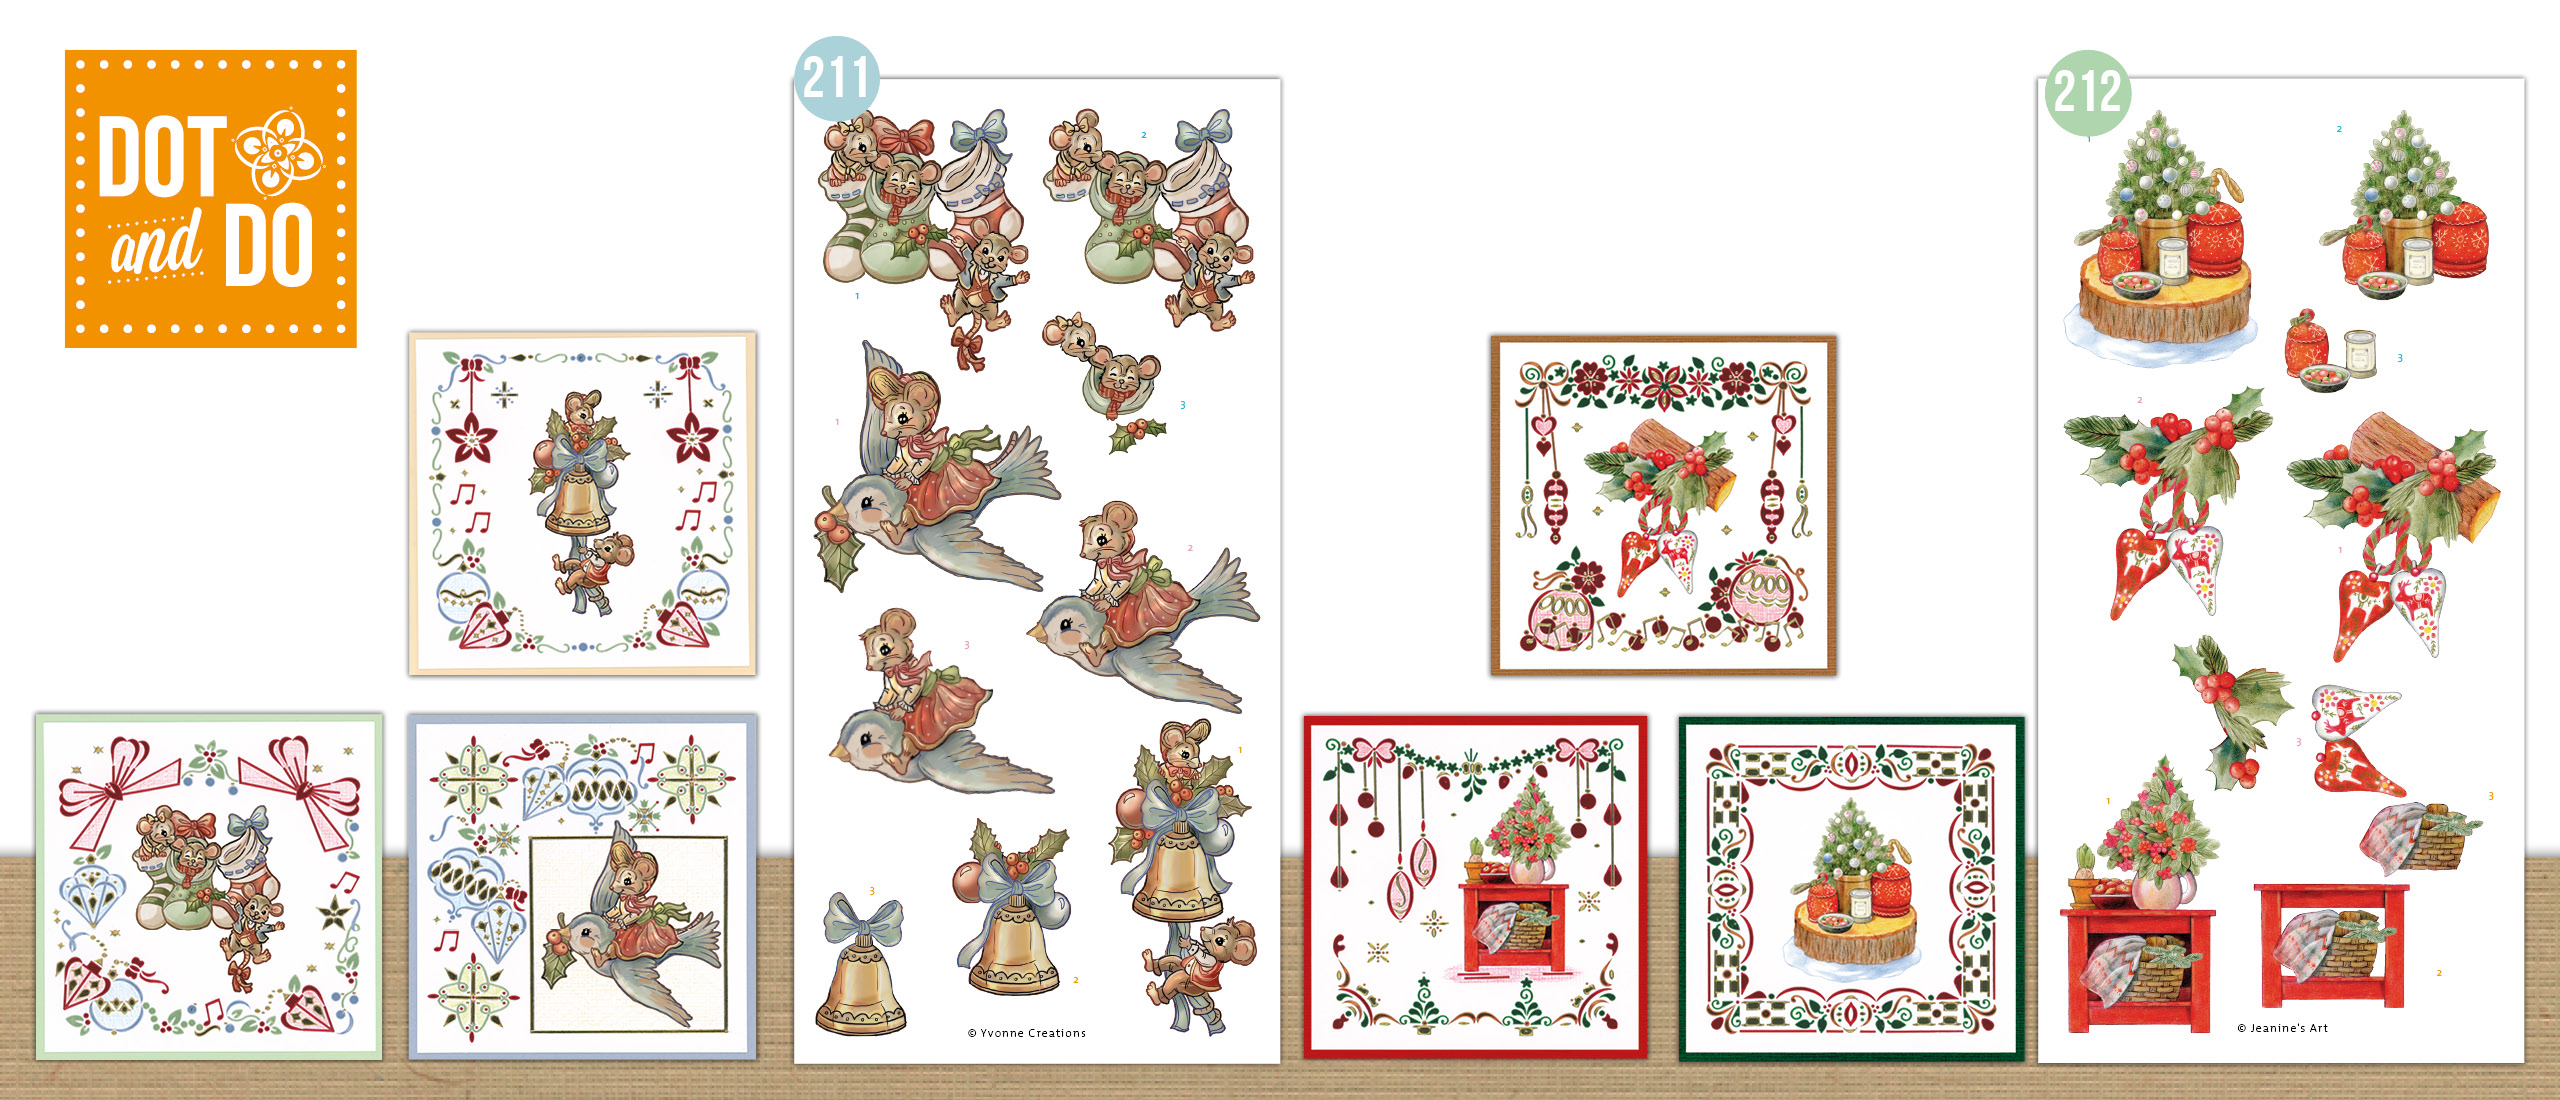 Dot and Do 211 en 212 - Have a Mice Christmas - Christmas Cottage